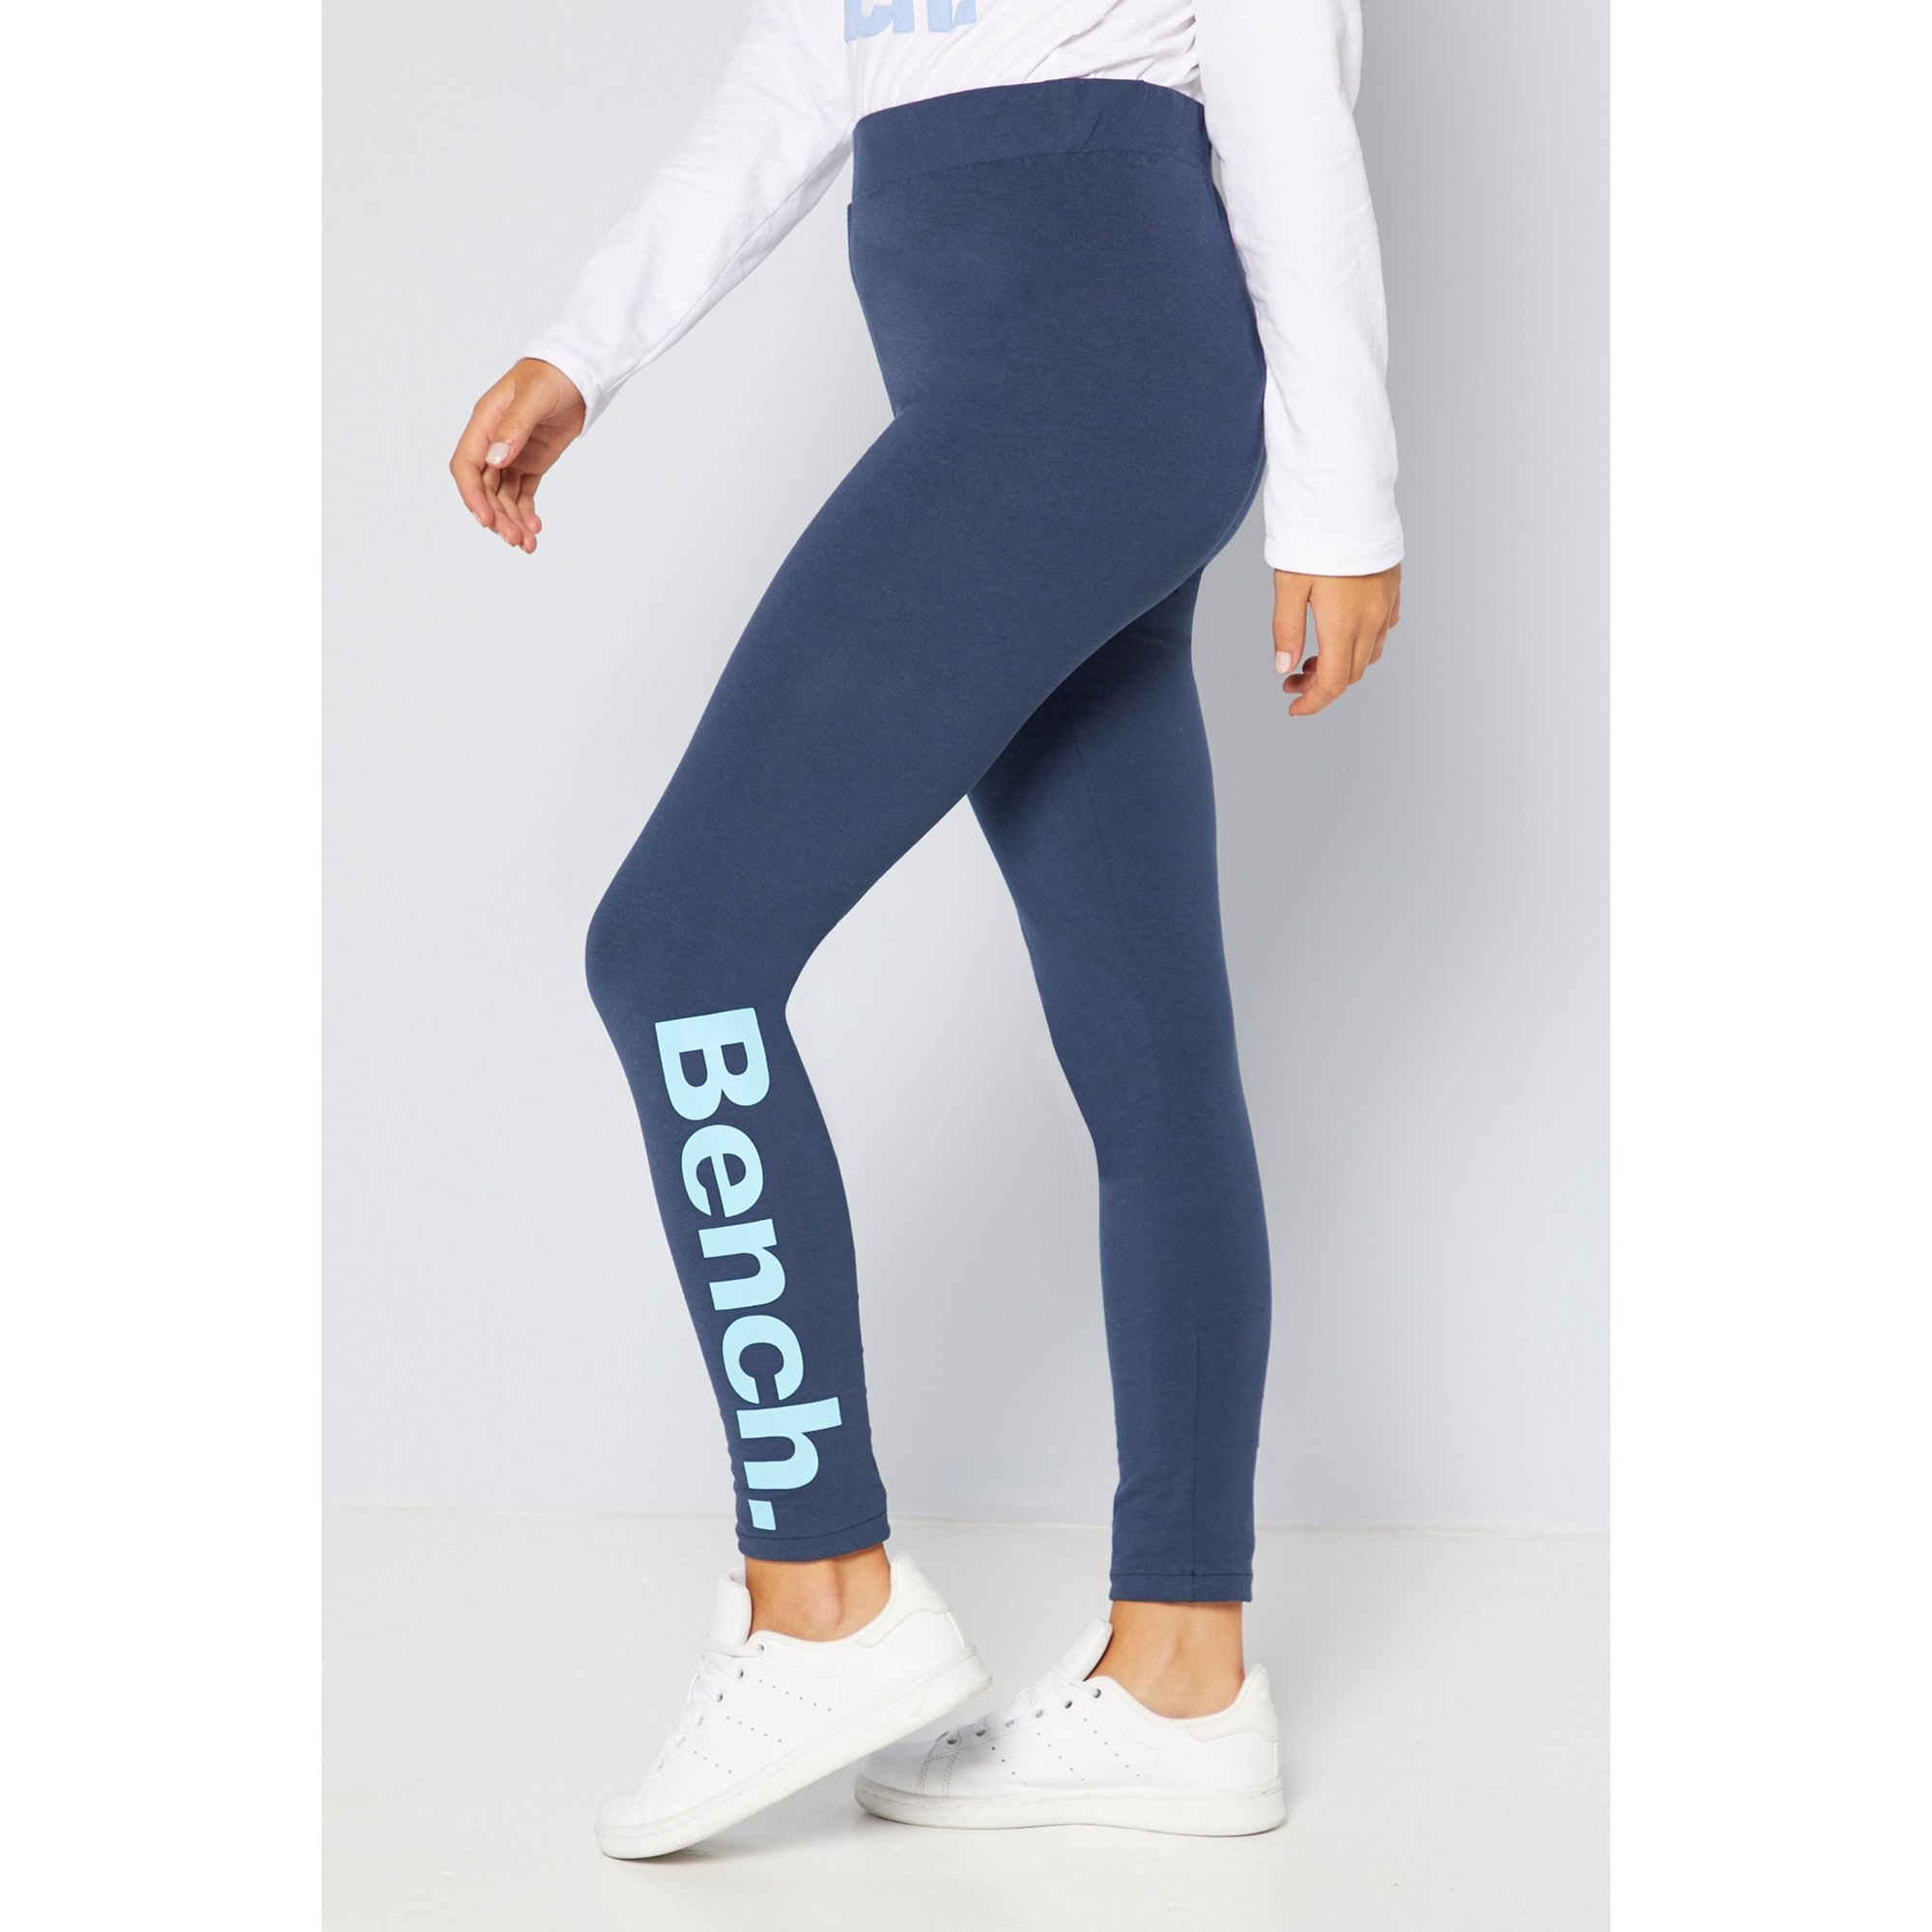 Image of Girls Bench Avis Navy Leggings